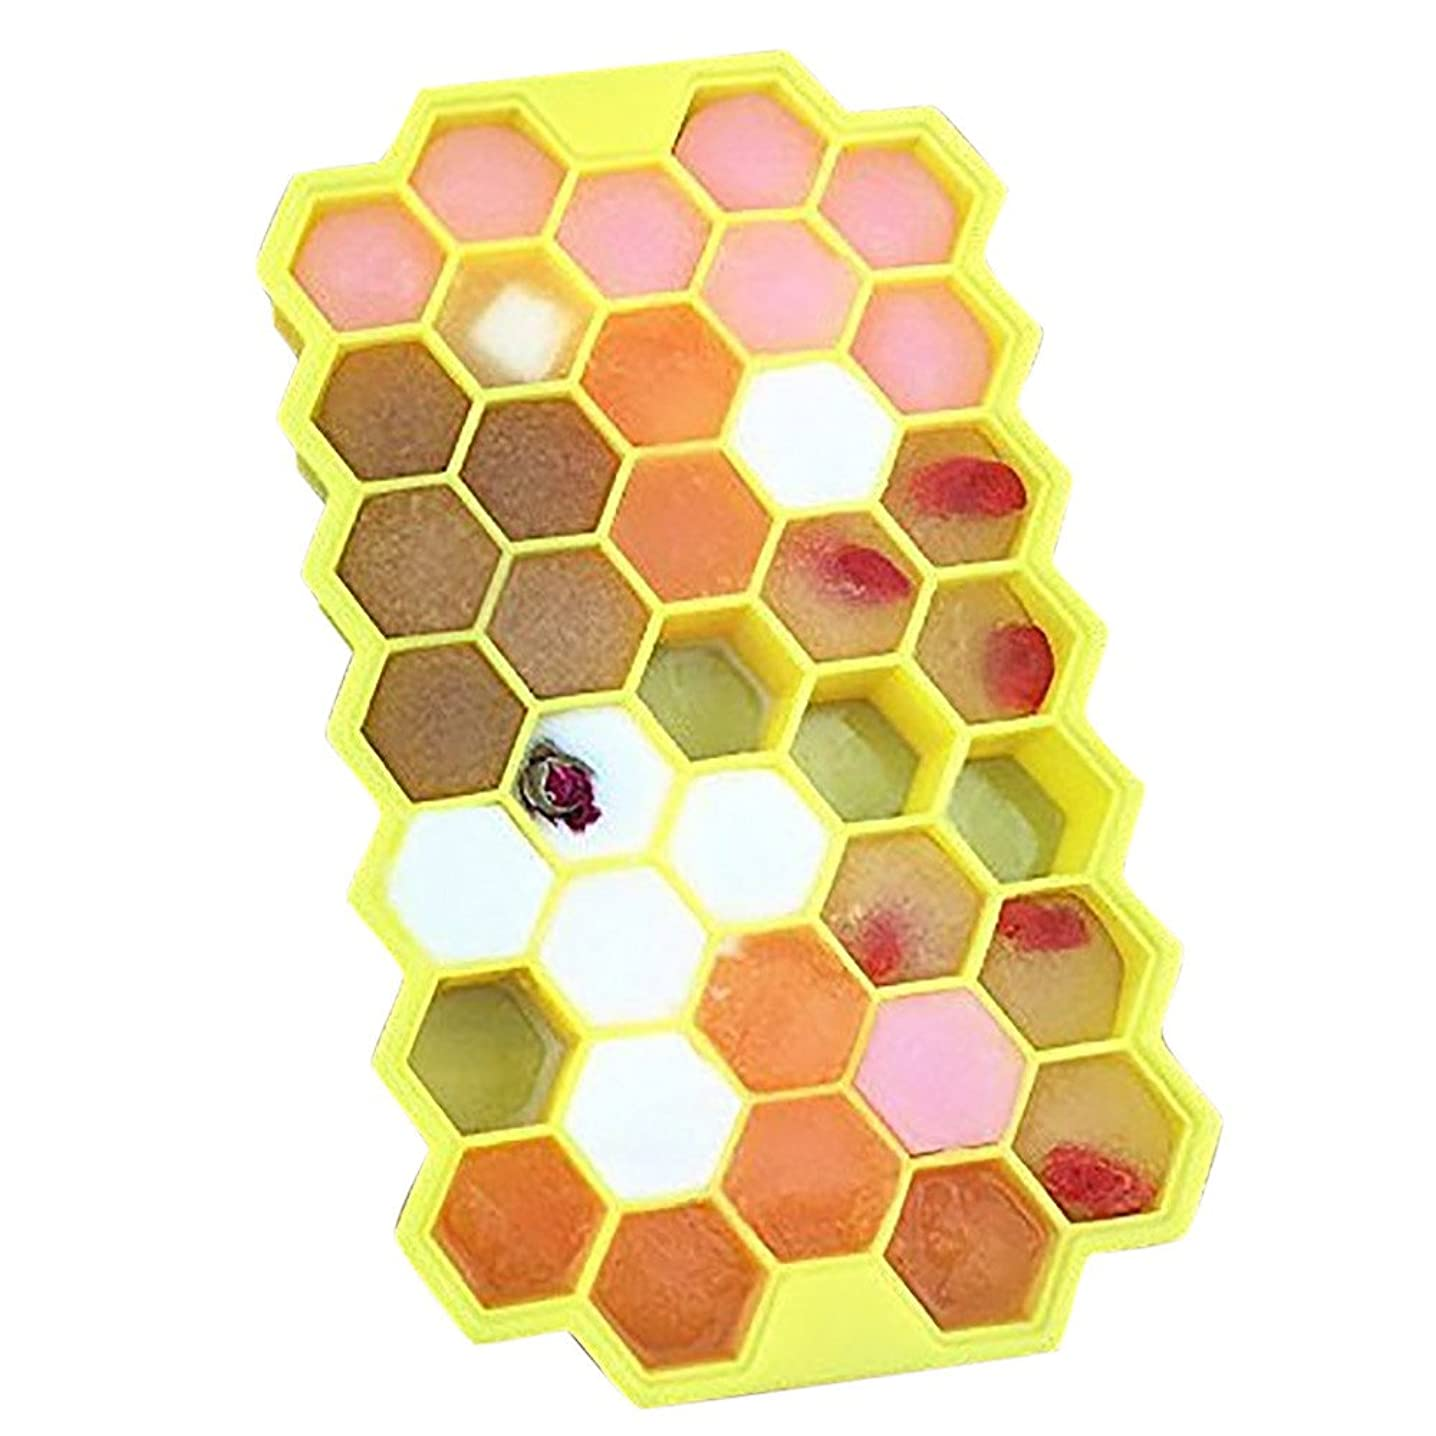 Vanvler Ice Cube Tray Honeycomb Shape 37 Cases { silicone Ice Mold } Storage Containers